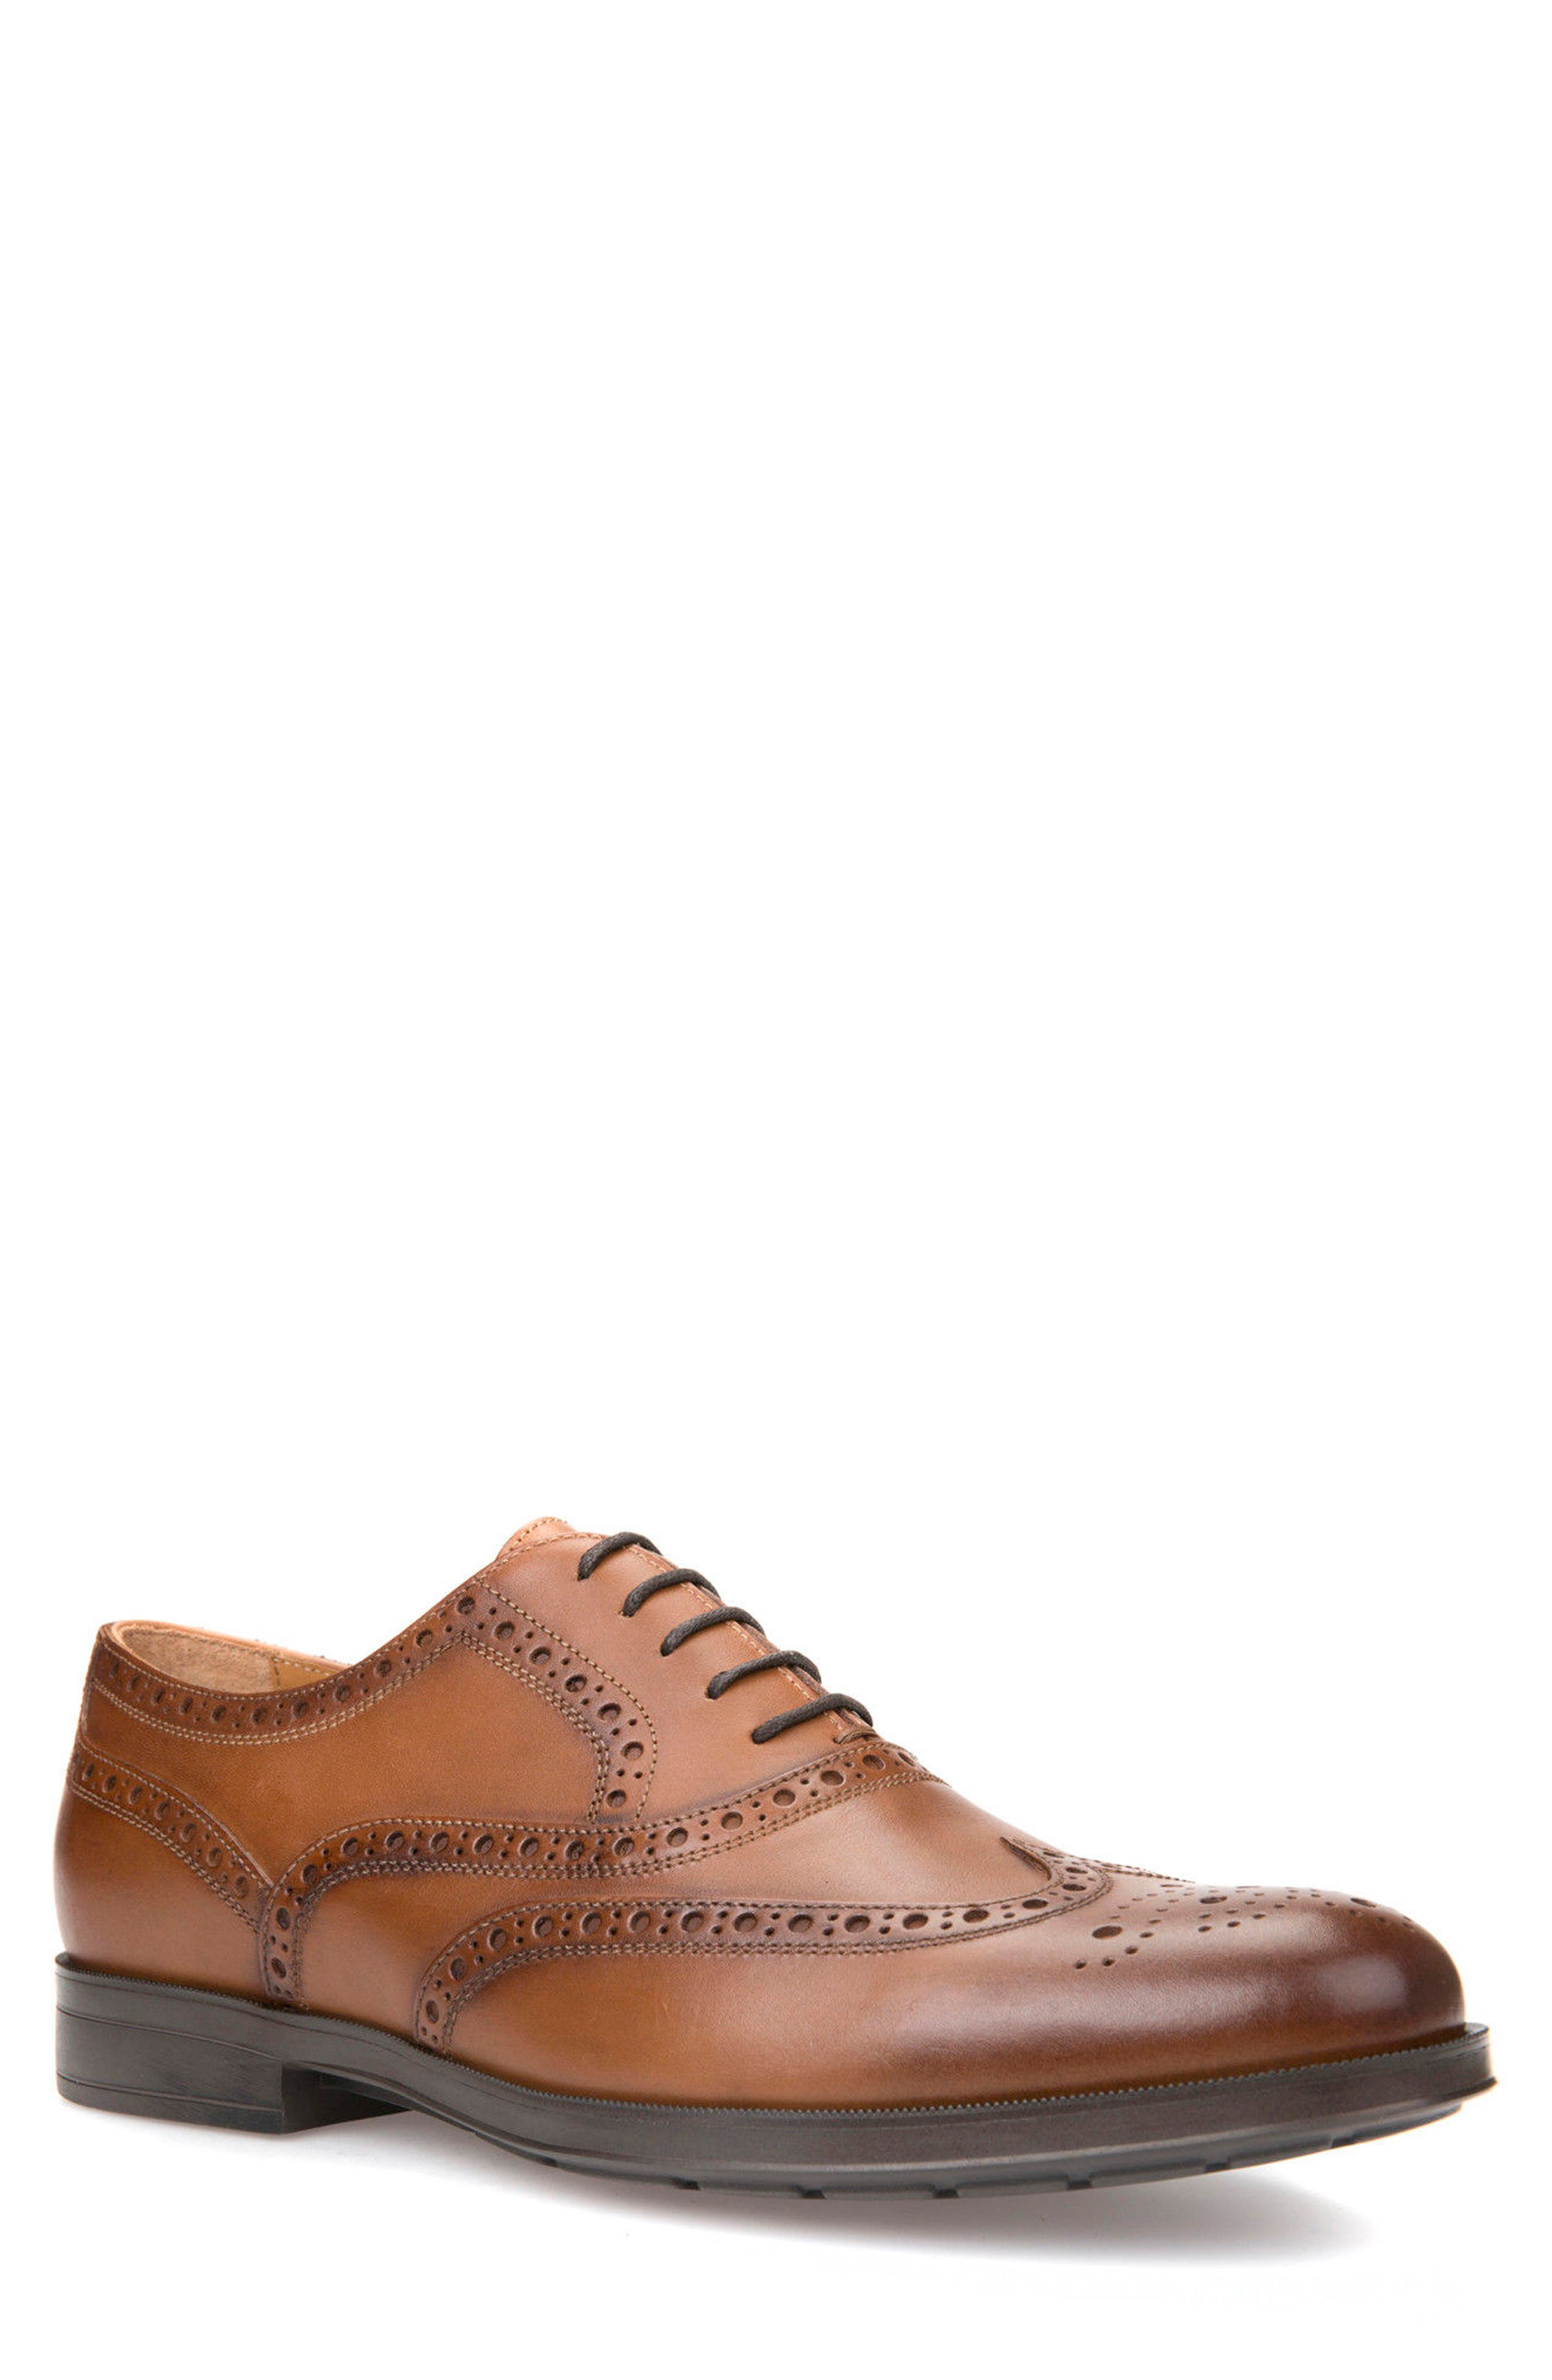 Hilstone 2Fit 2 Wingtip Oxford,                             Main thumbnail 1, color,                             Cognac Leather